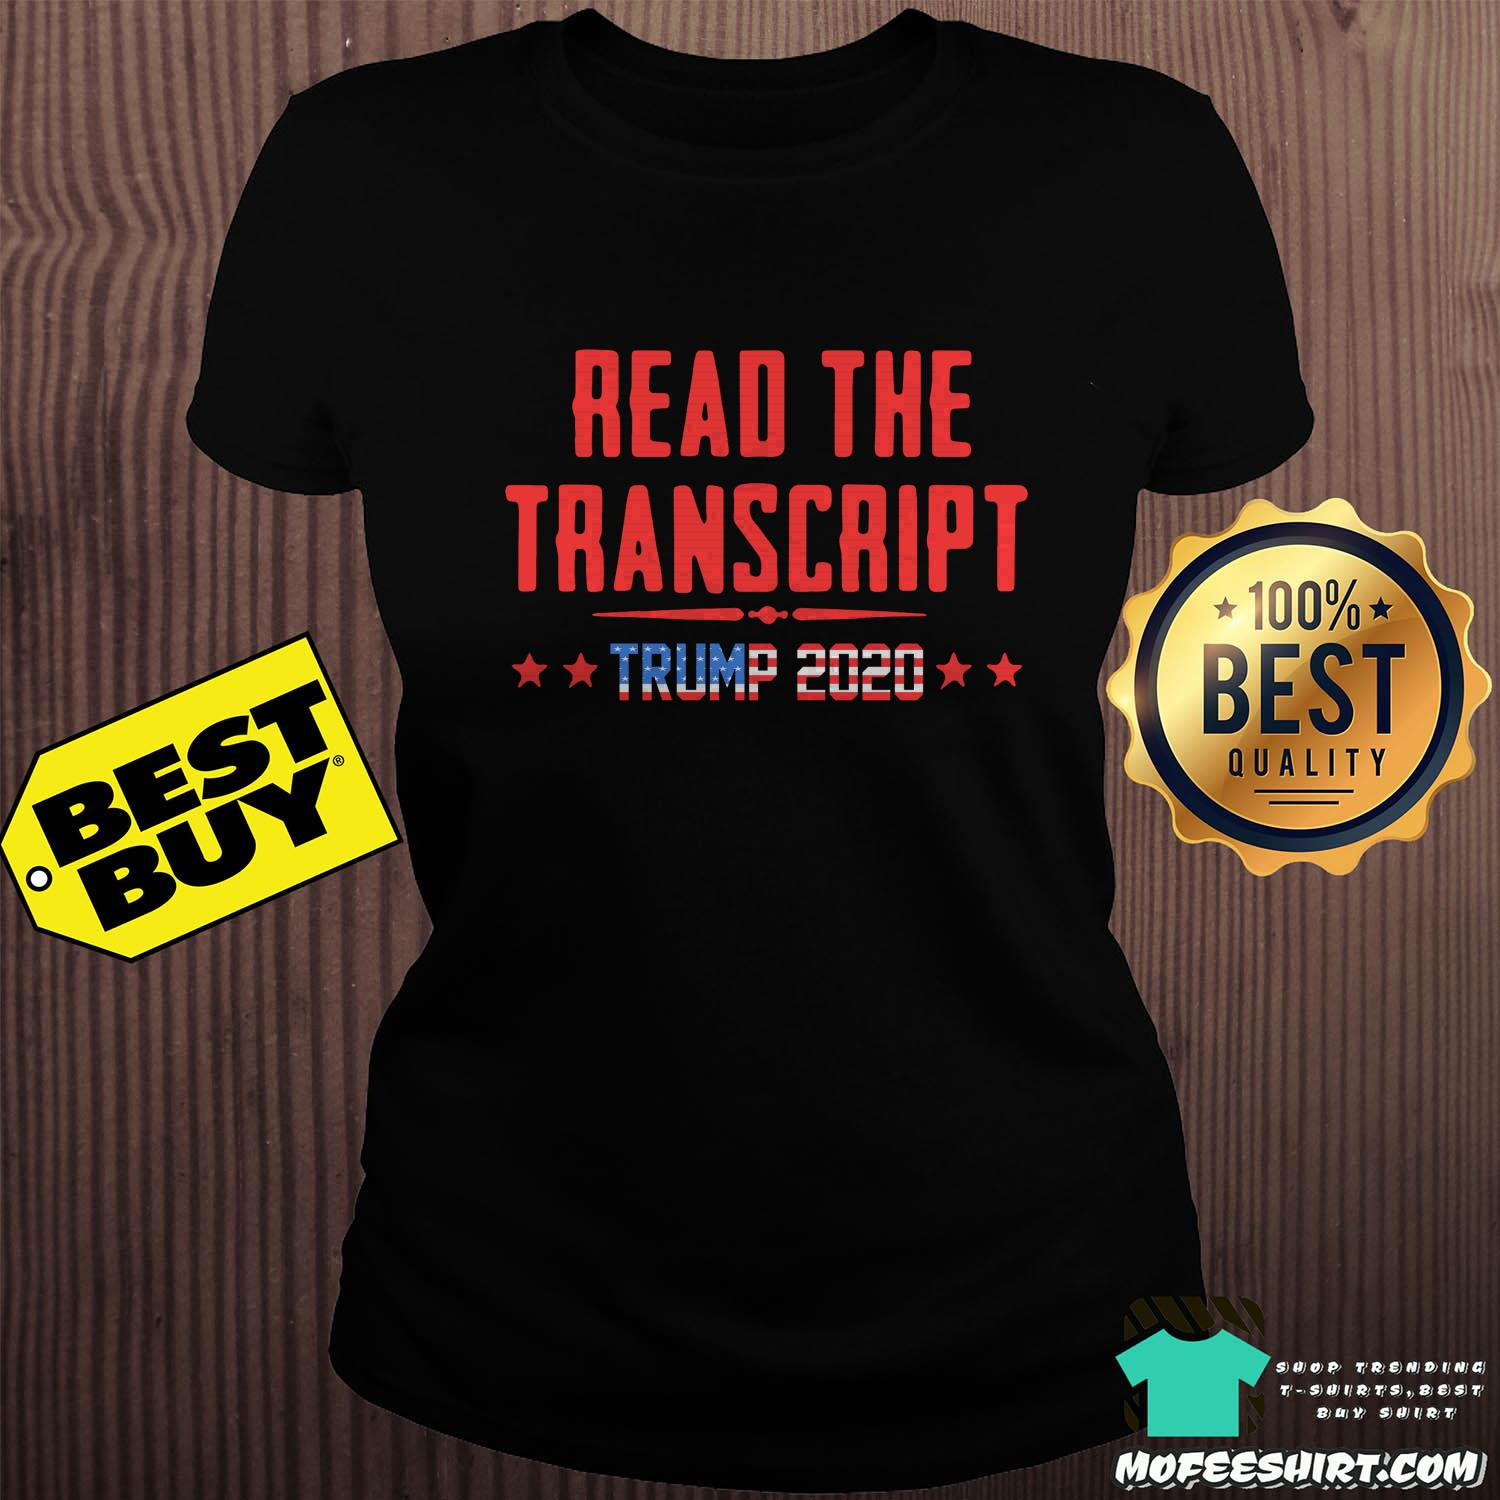 read the transcript trump impeachment day ladies tee sweater - Read The Transcript Trump Impeachment Day Shirt Sweater